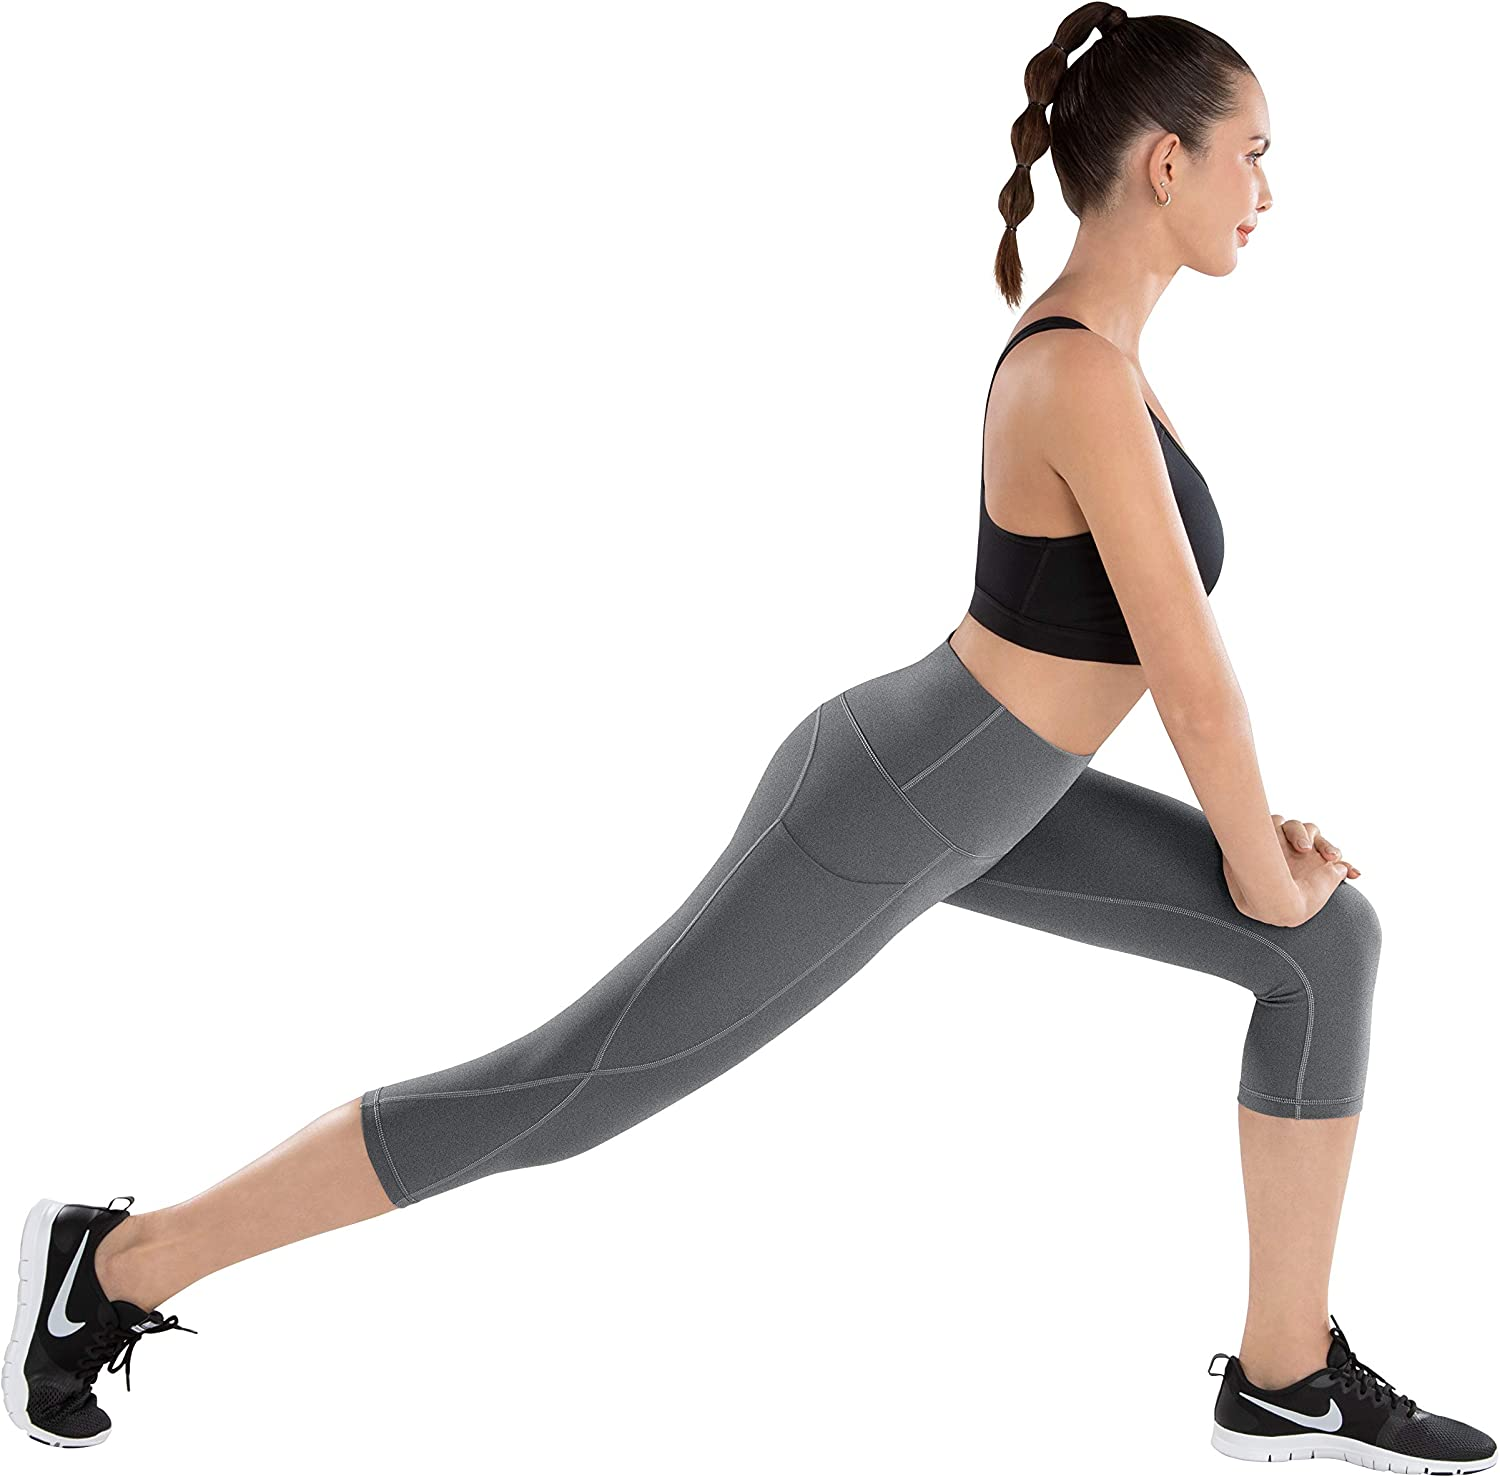 LifeSky Yoga Pants with Pockets High Waisted Tummy Control Leggings 4 Way Stretch Workout Pants